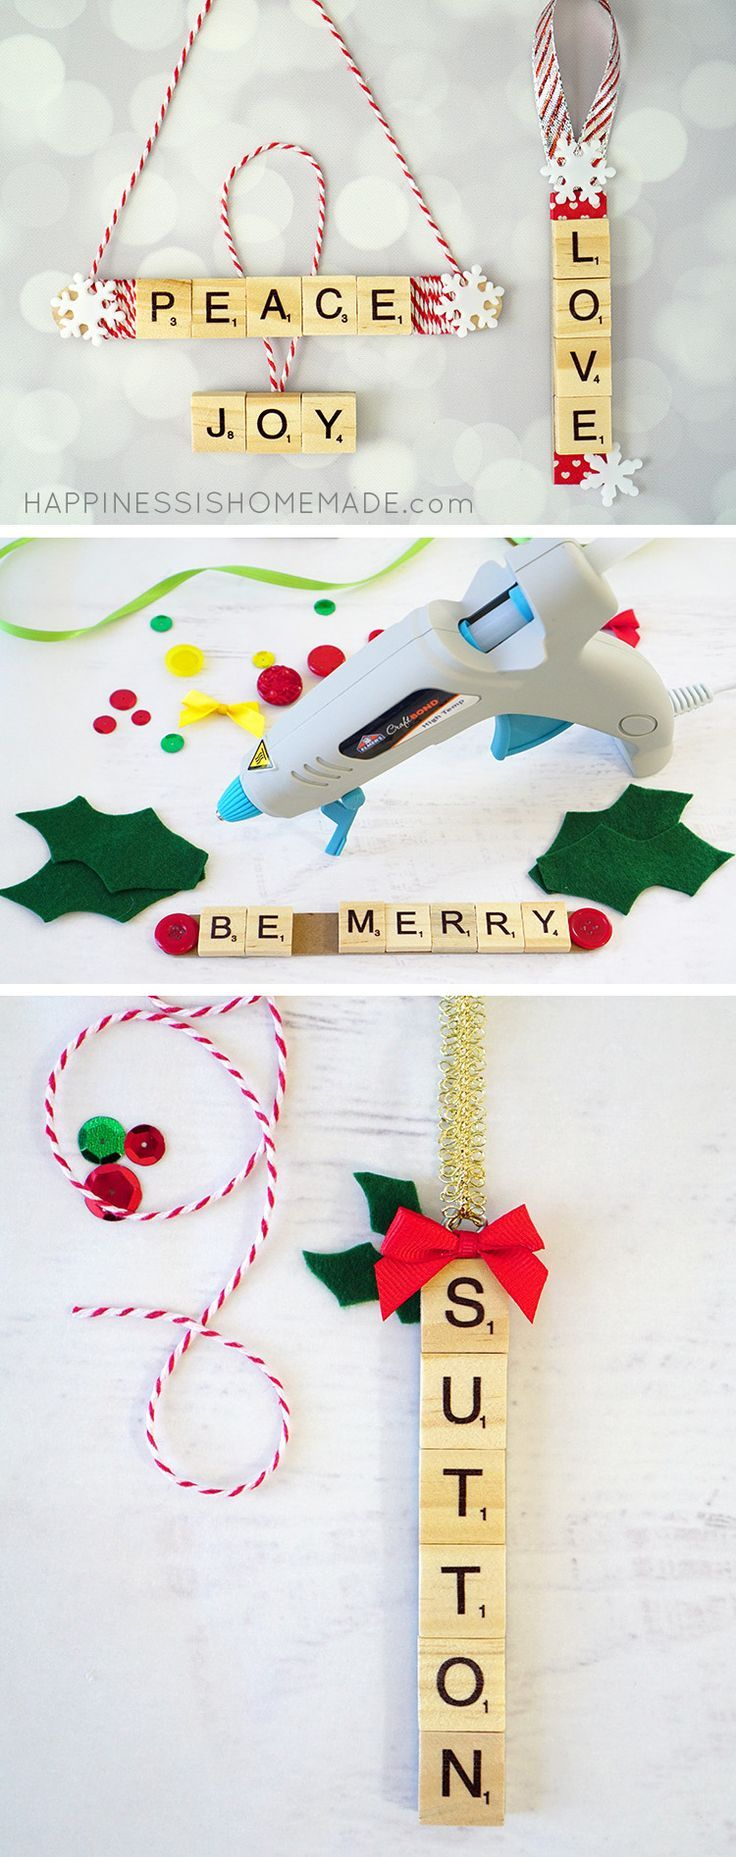 Ornaments with names on them - Personalized Scrabble Tile Christmas Ornaments